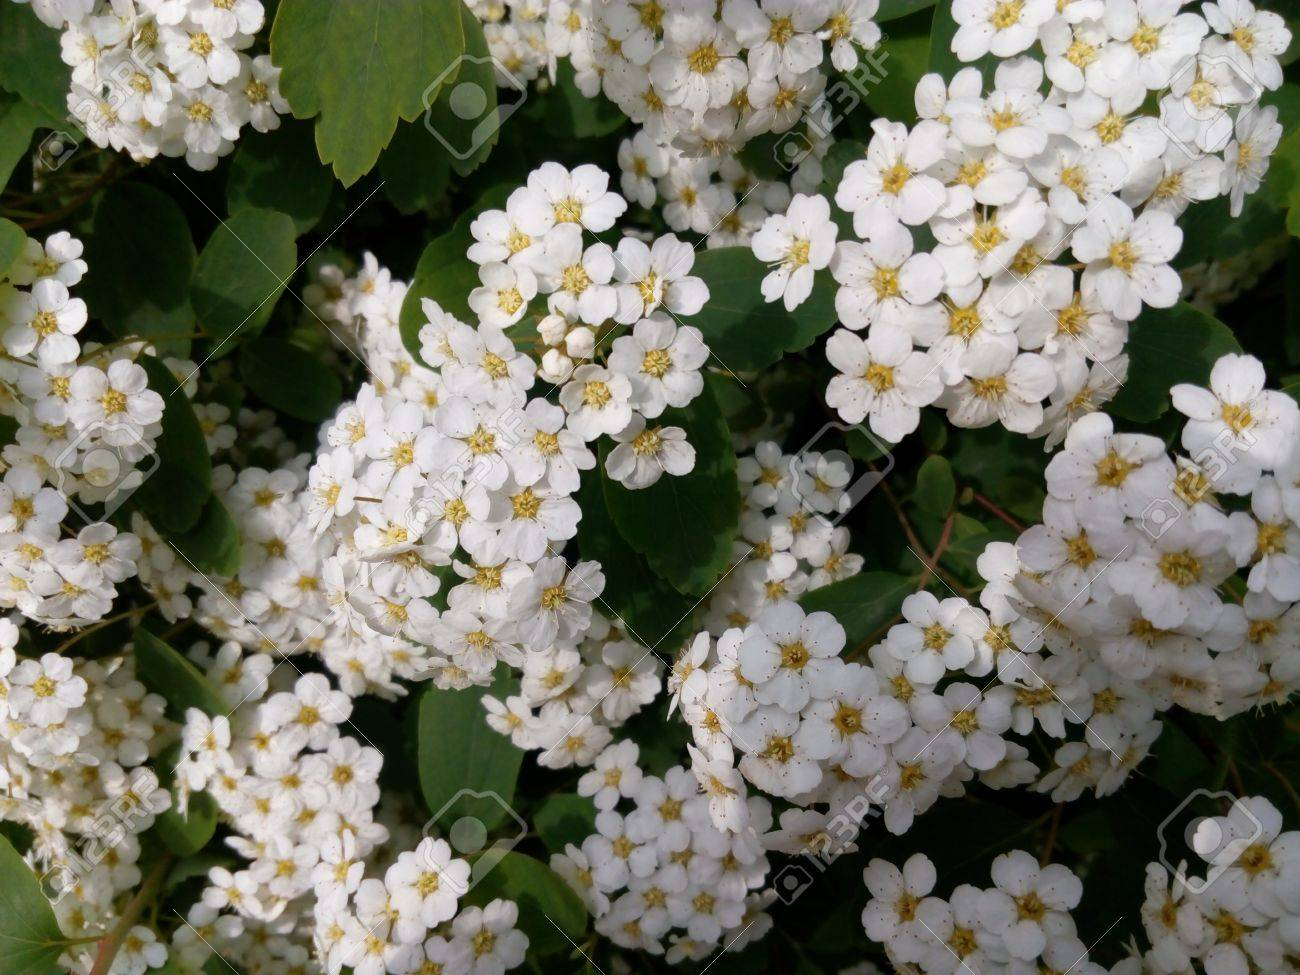 Spring green bush studded with small white flowers stock photo spring green bush studded with small white flowers stock photo 68940882 mightylinksfo